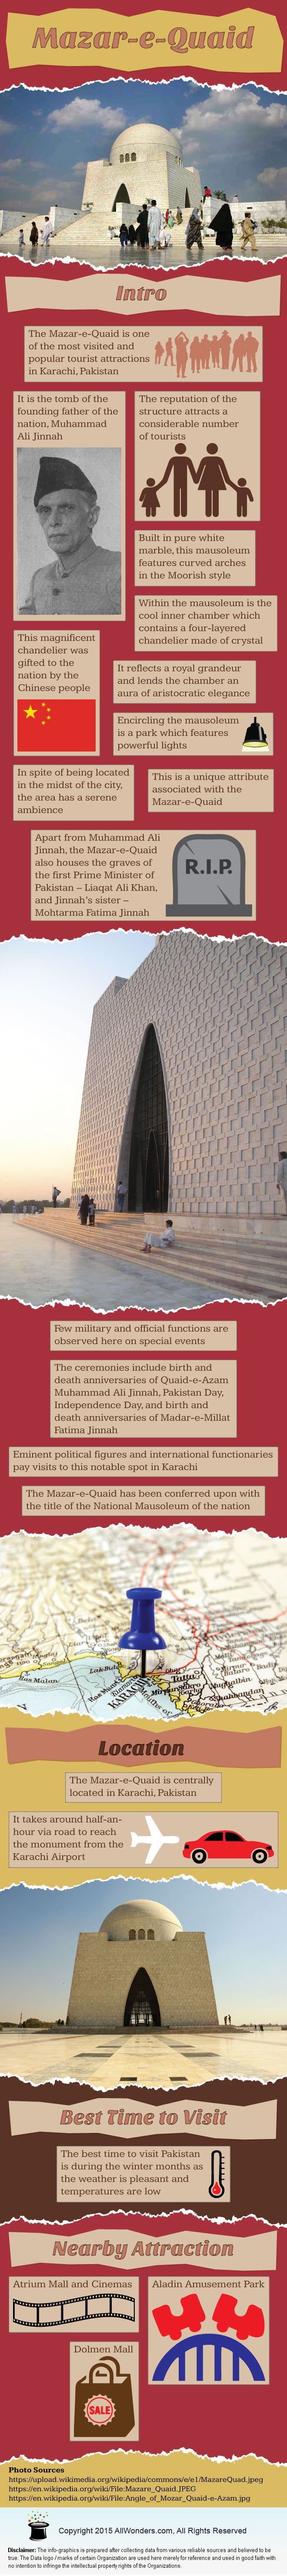 Mazar-e-Quaid Infographic showing facts and information about Mazar-e-Quaid in Pakistan. Know about its Location, Best time to visit, nearby attractions and more.